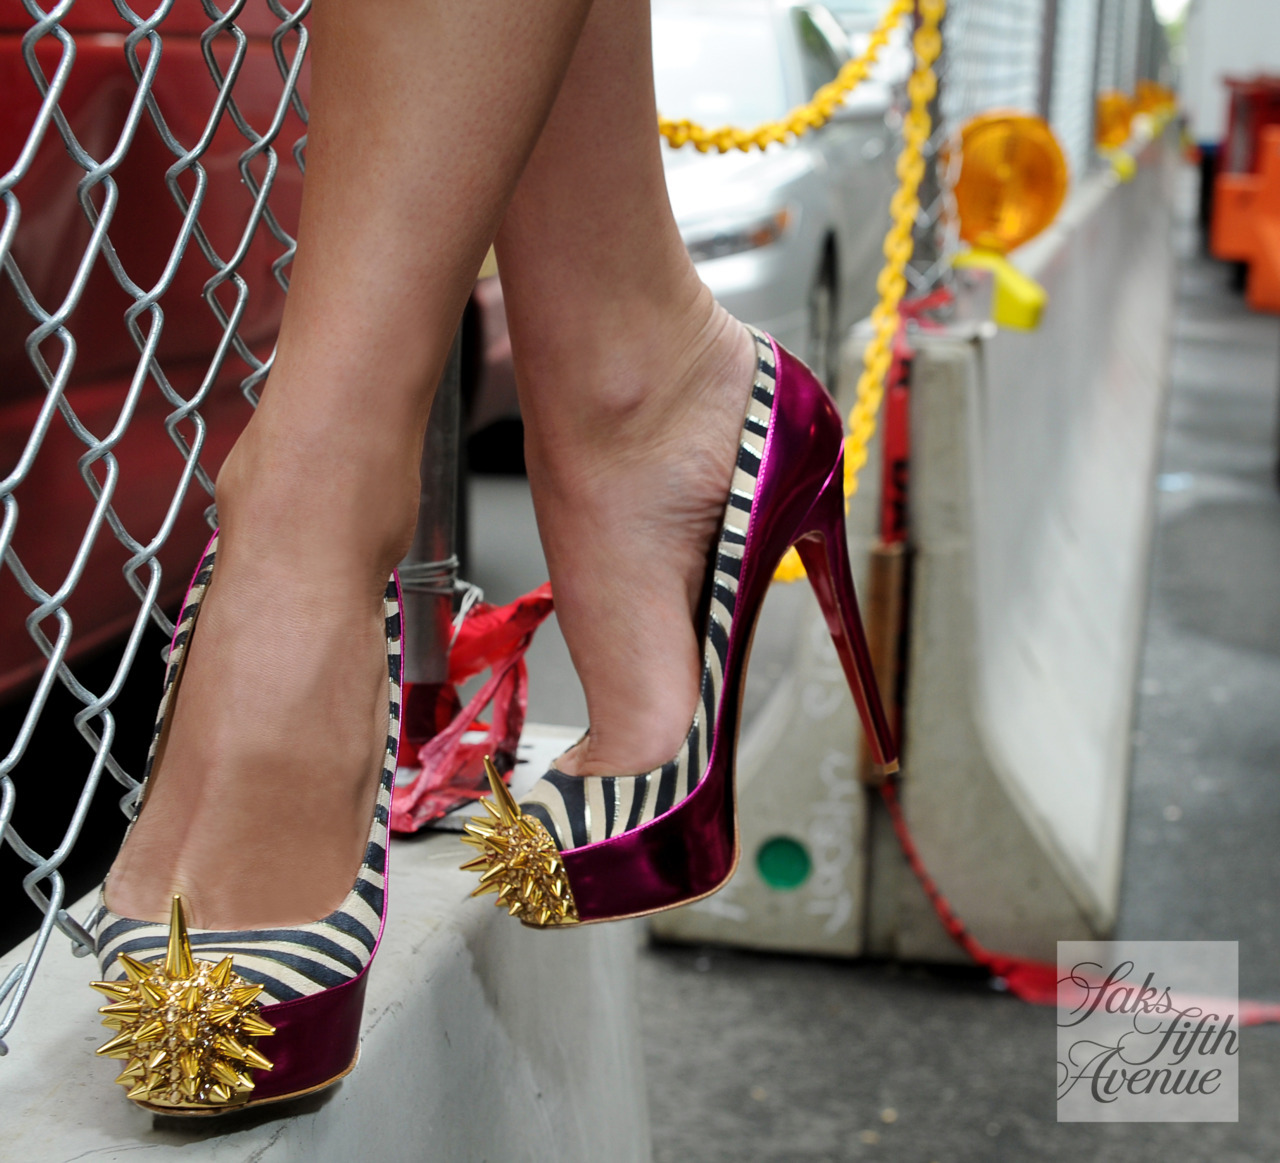 Christian Louboutin knows how to live on the edge with these spiked toes!